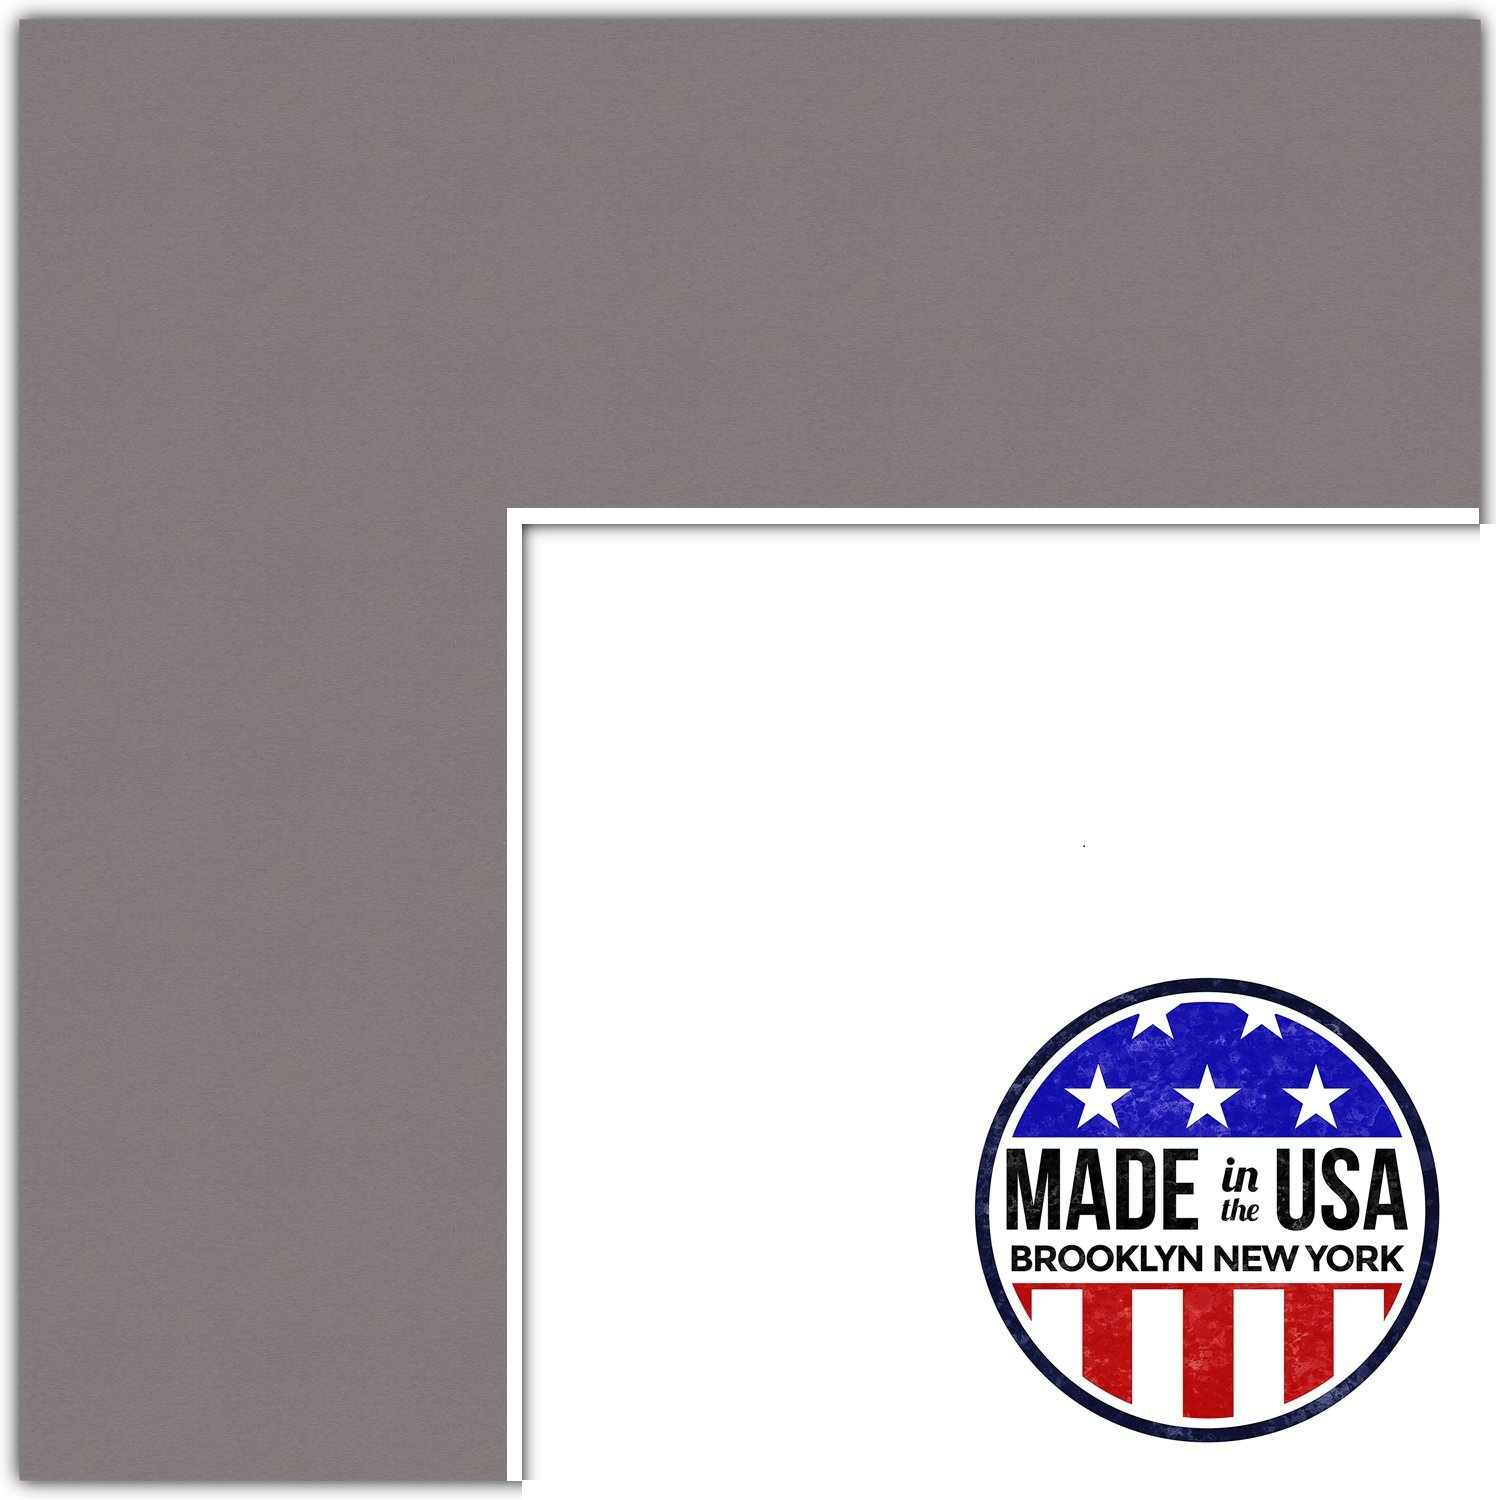 15x21 Cobblestone / Pewter Custom Mat for Picture Frame with 11x17 opening size (Mat Only, Frame NOT Included)